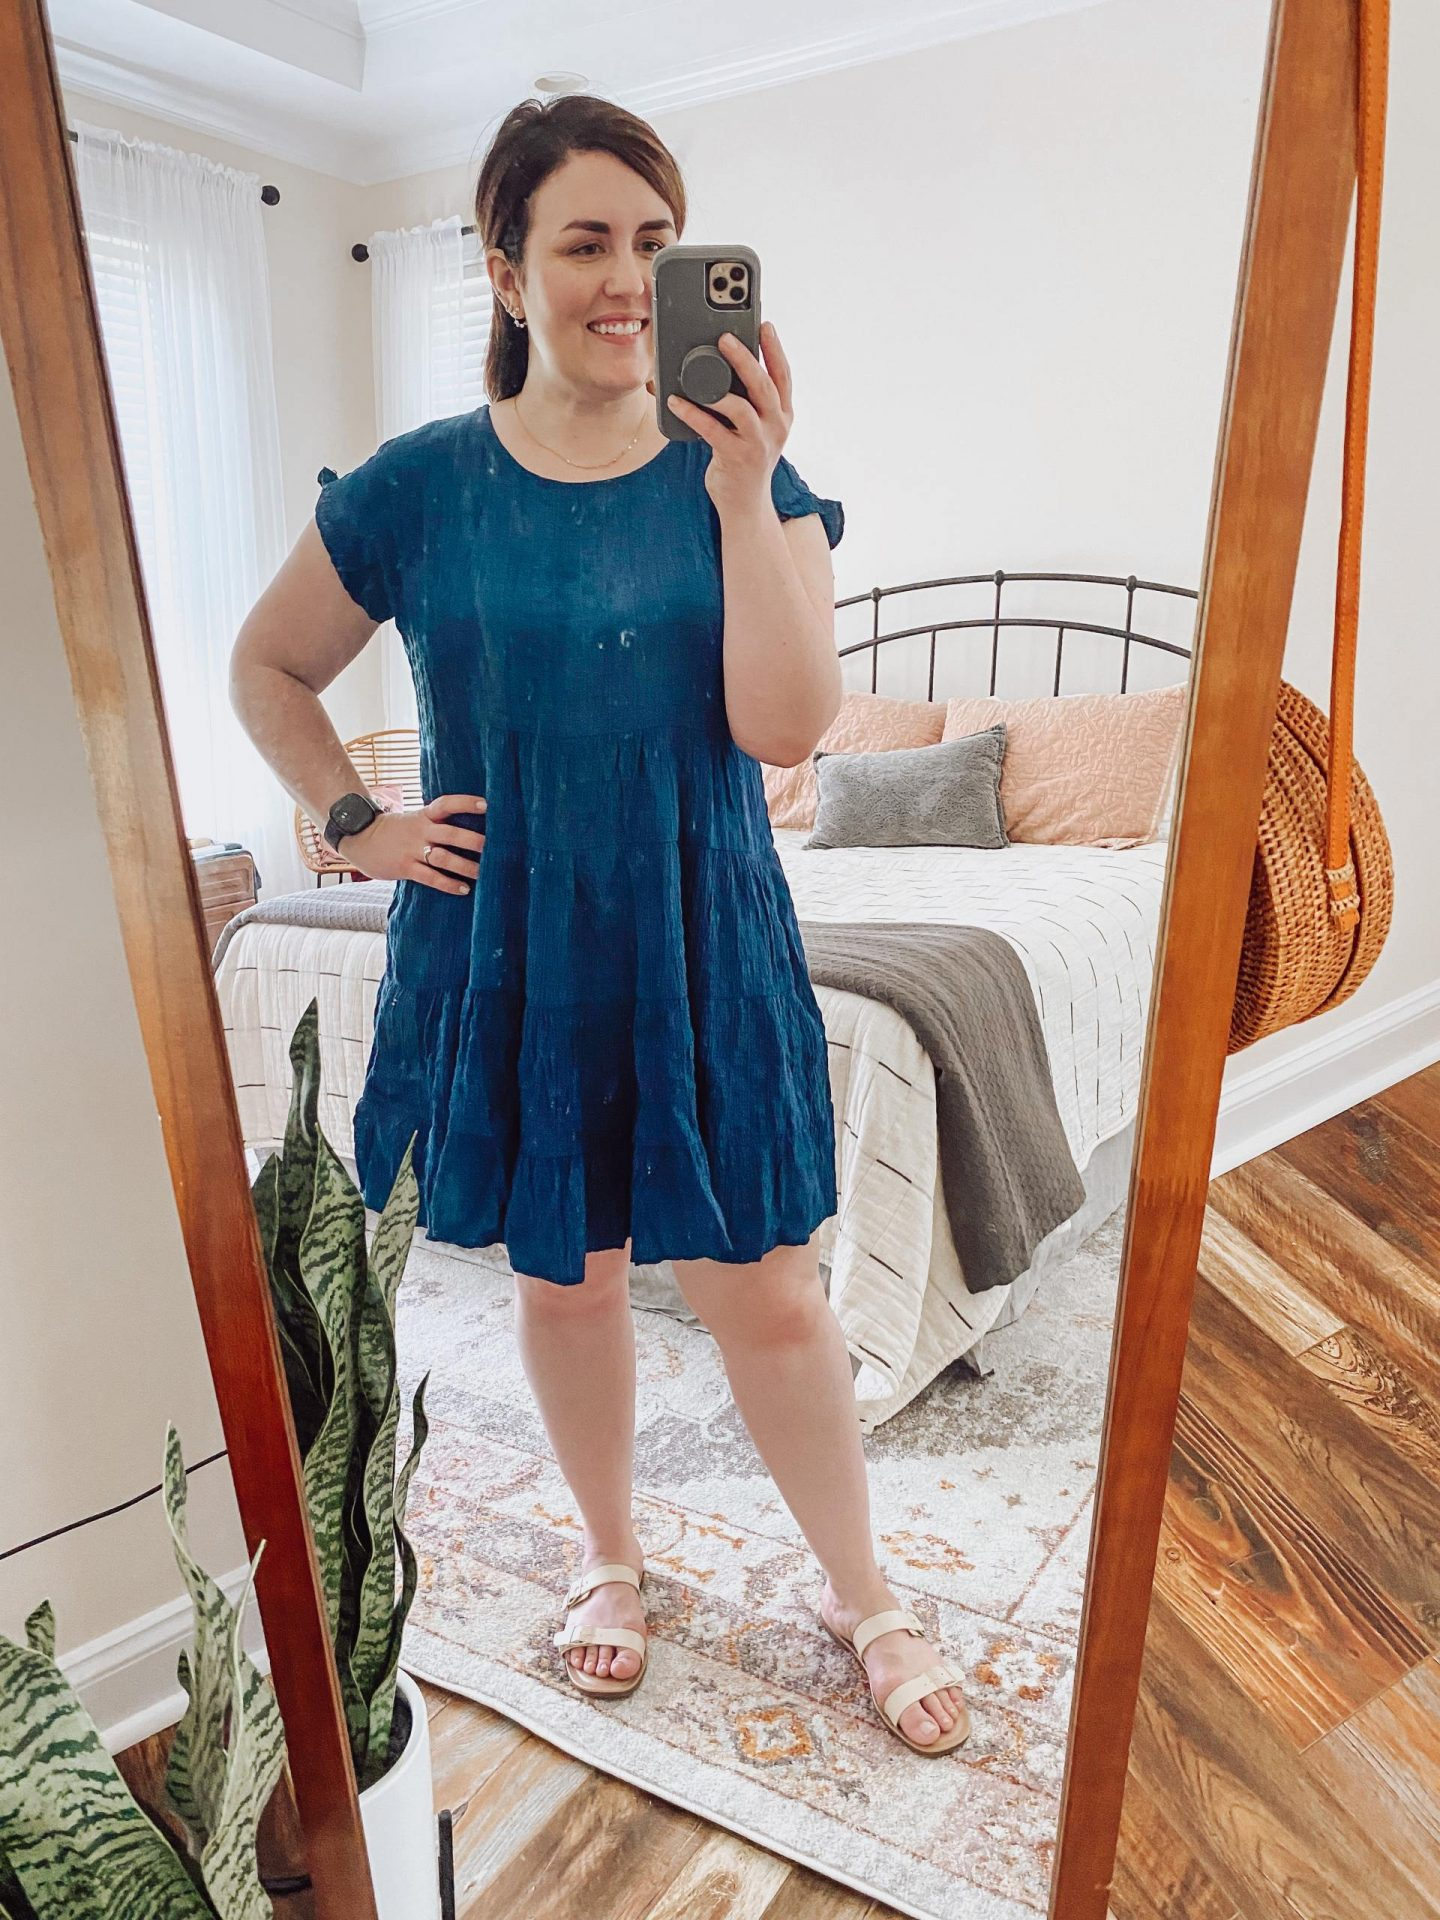 NC blogger Rebecca Lately is sharing her favorite picks from the Target summer dress sale. Which dress is your favorite?